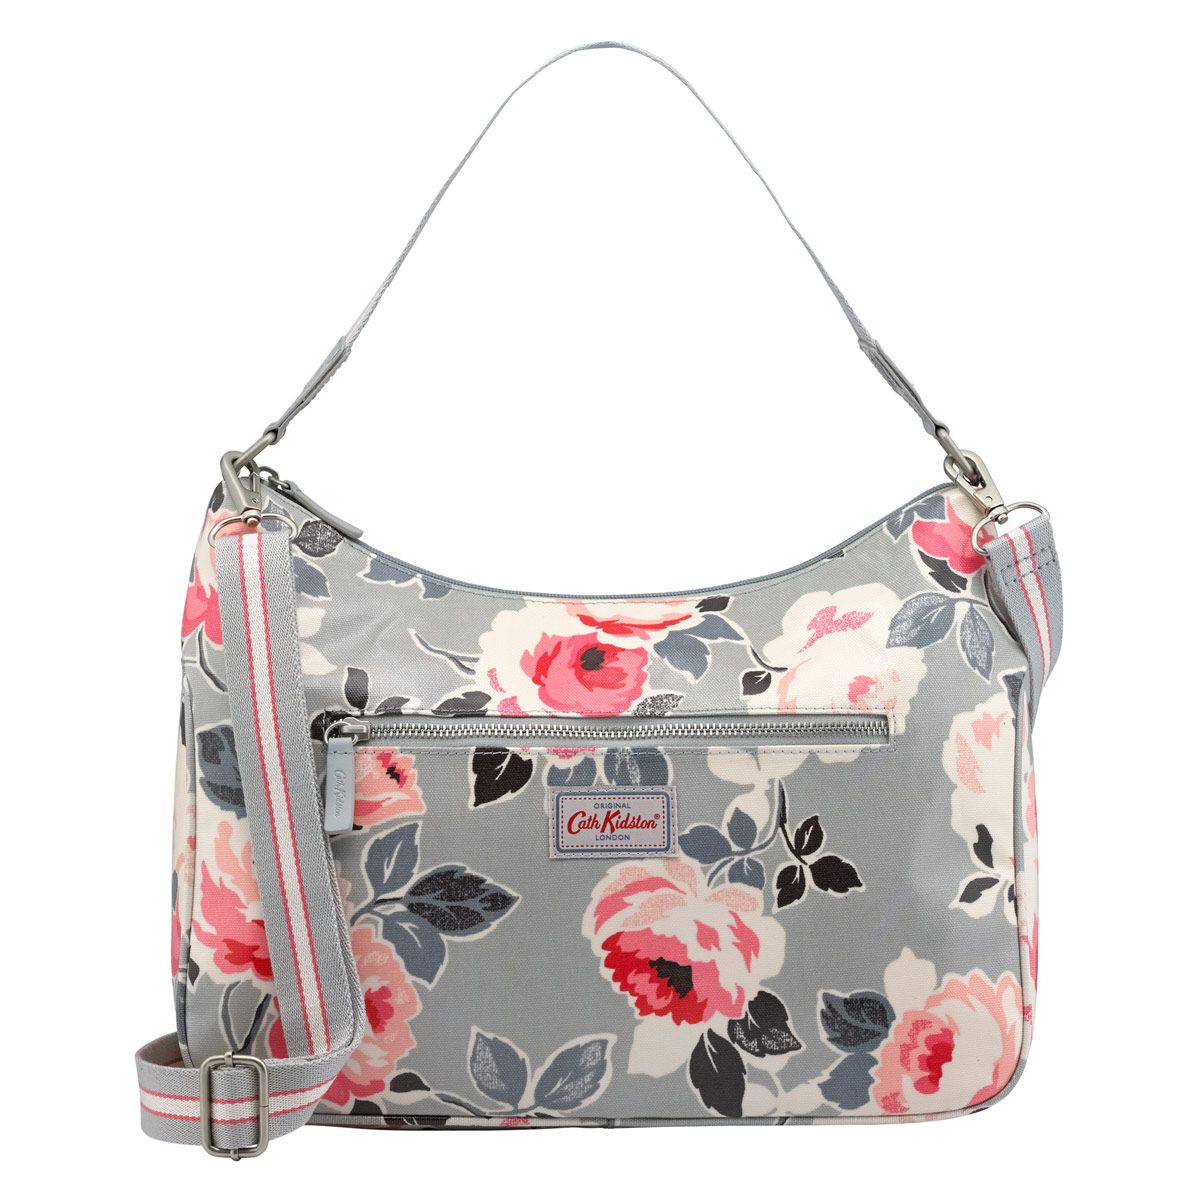 Our curve shoulder bag is the perfect pared-back handbag for every day. It comes in a grey floral, Paper Rose, with an additional long strap to wear it your way.